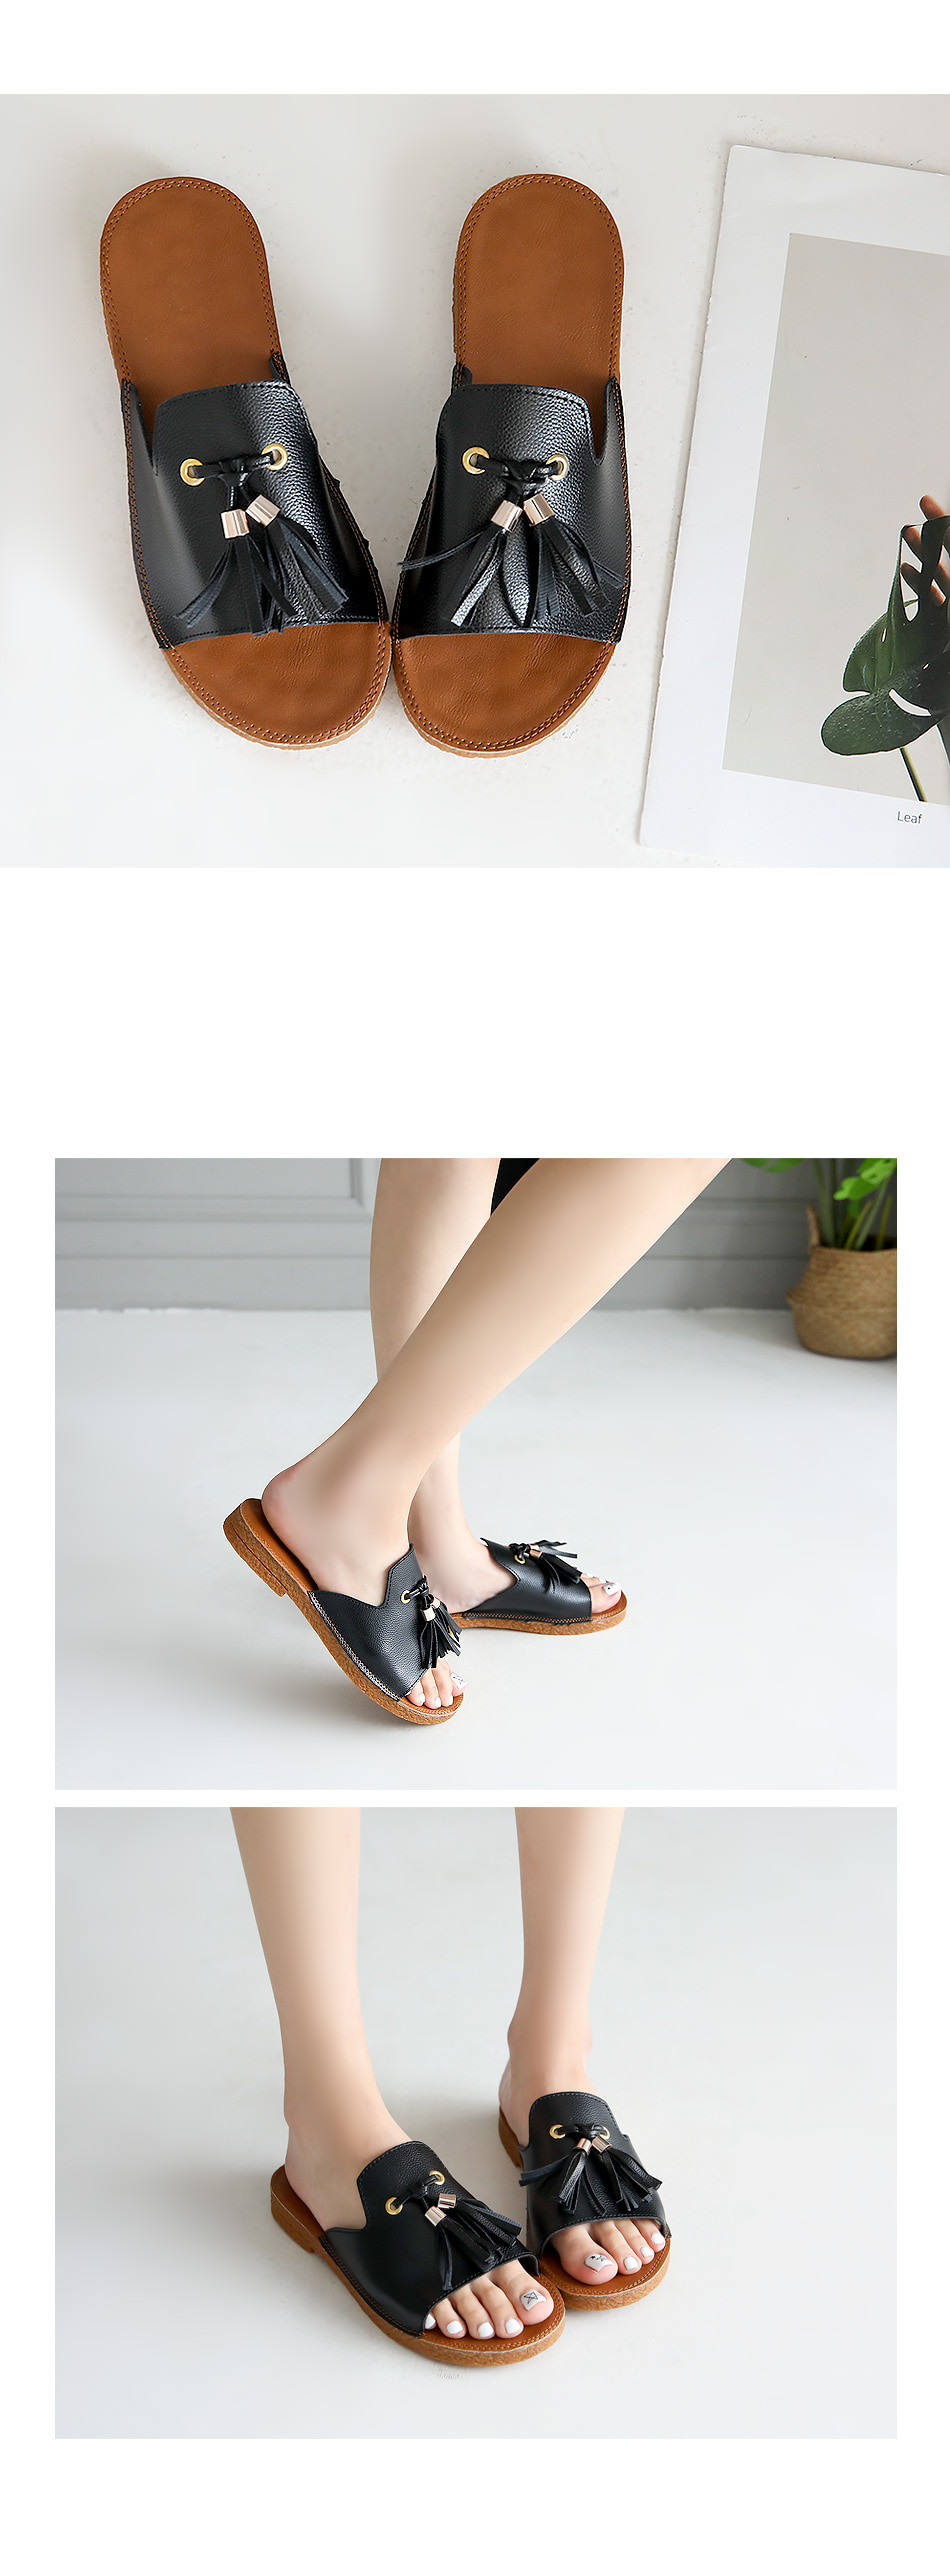 This Kella Slippers 2cm